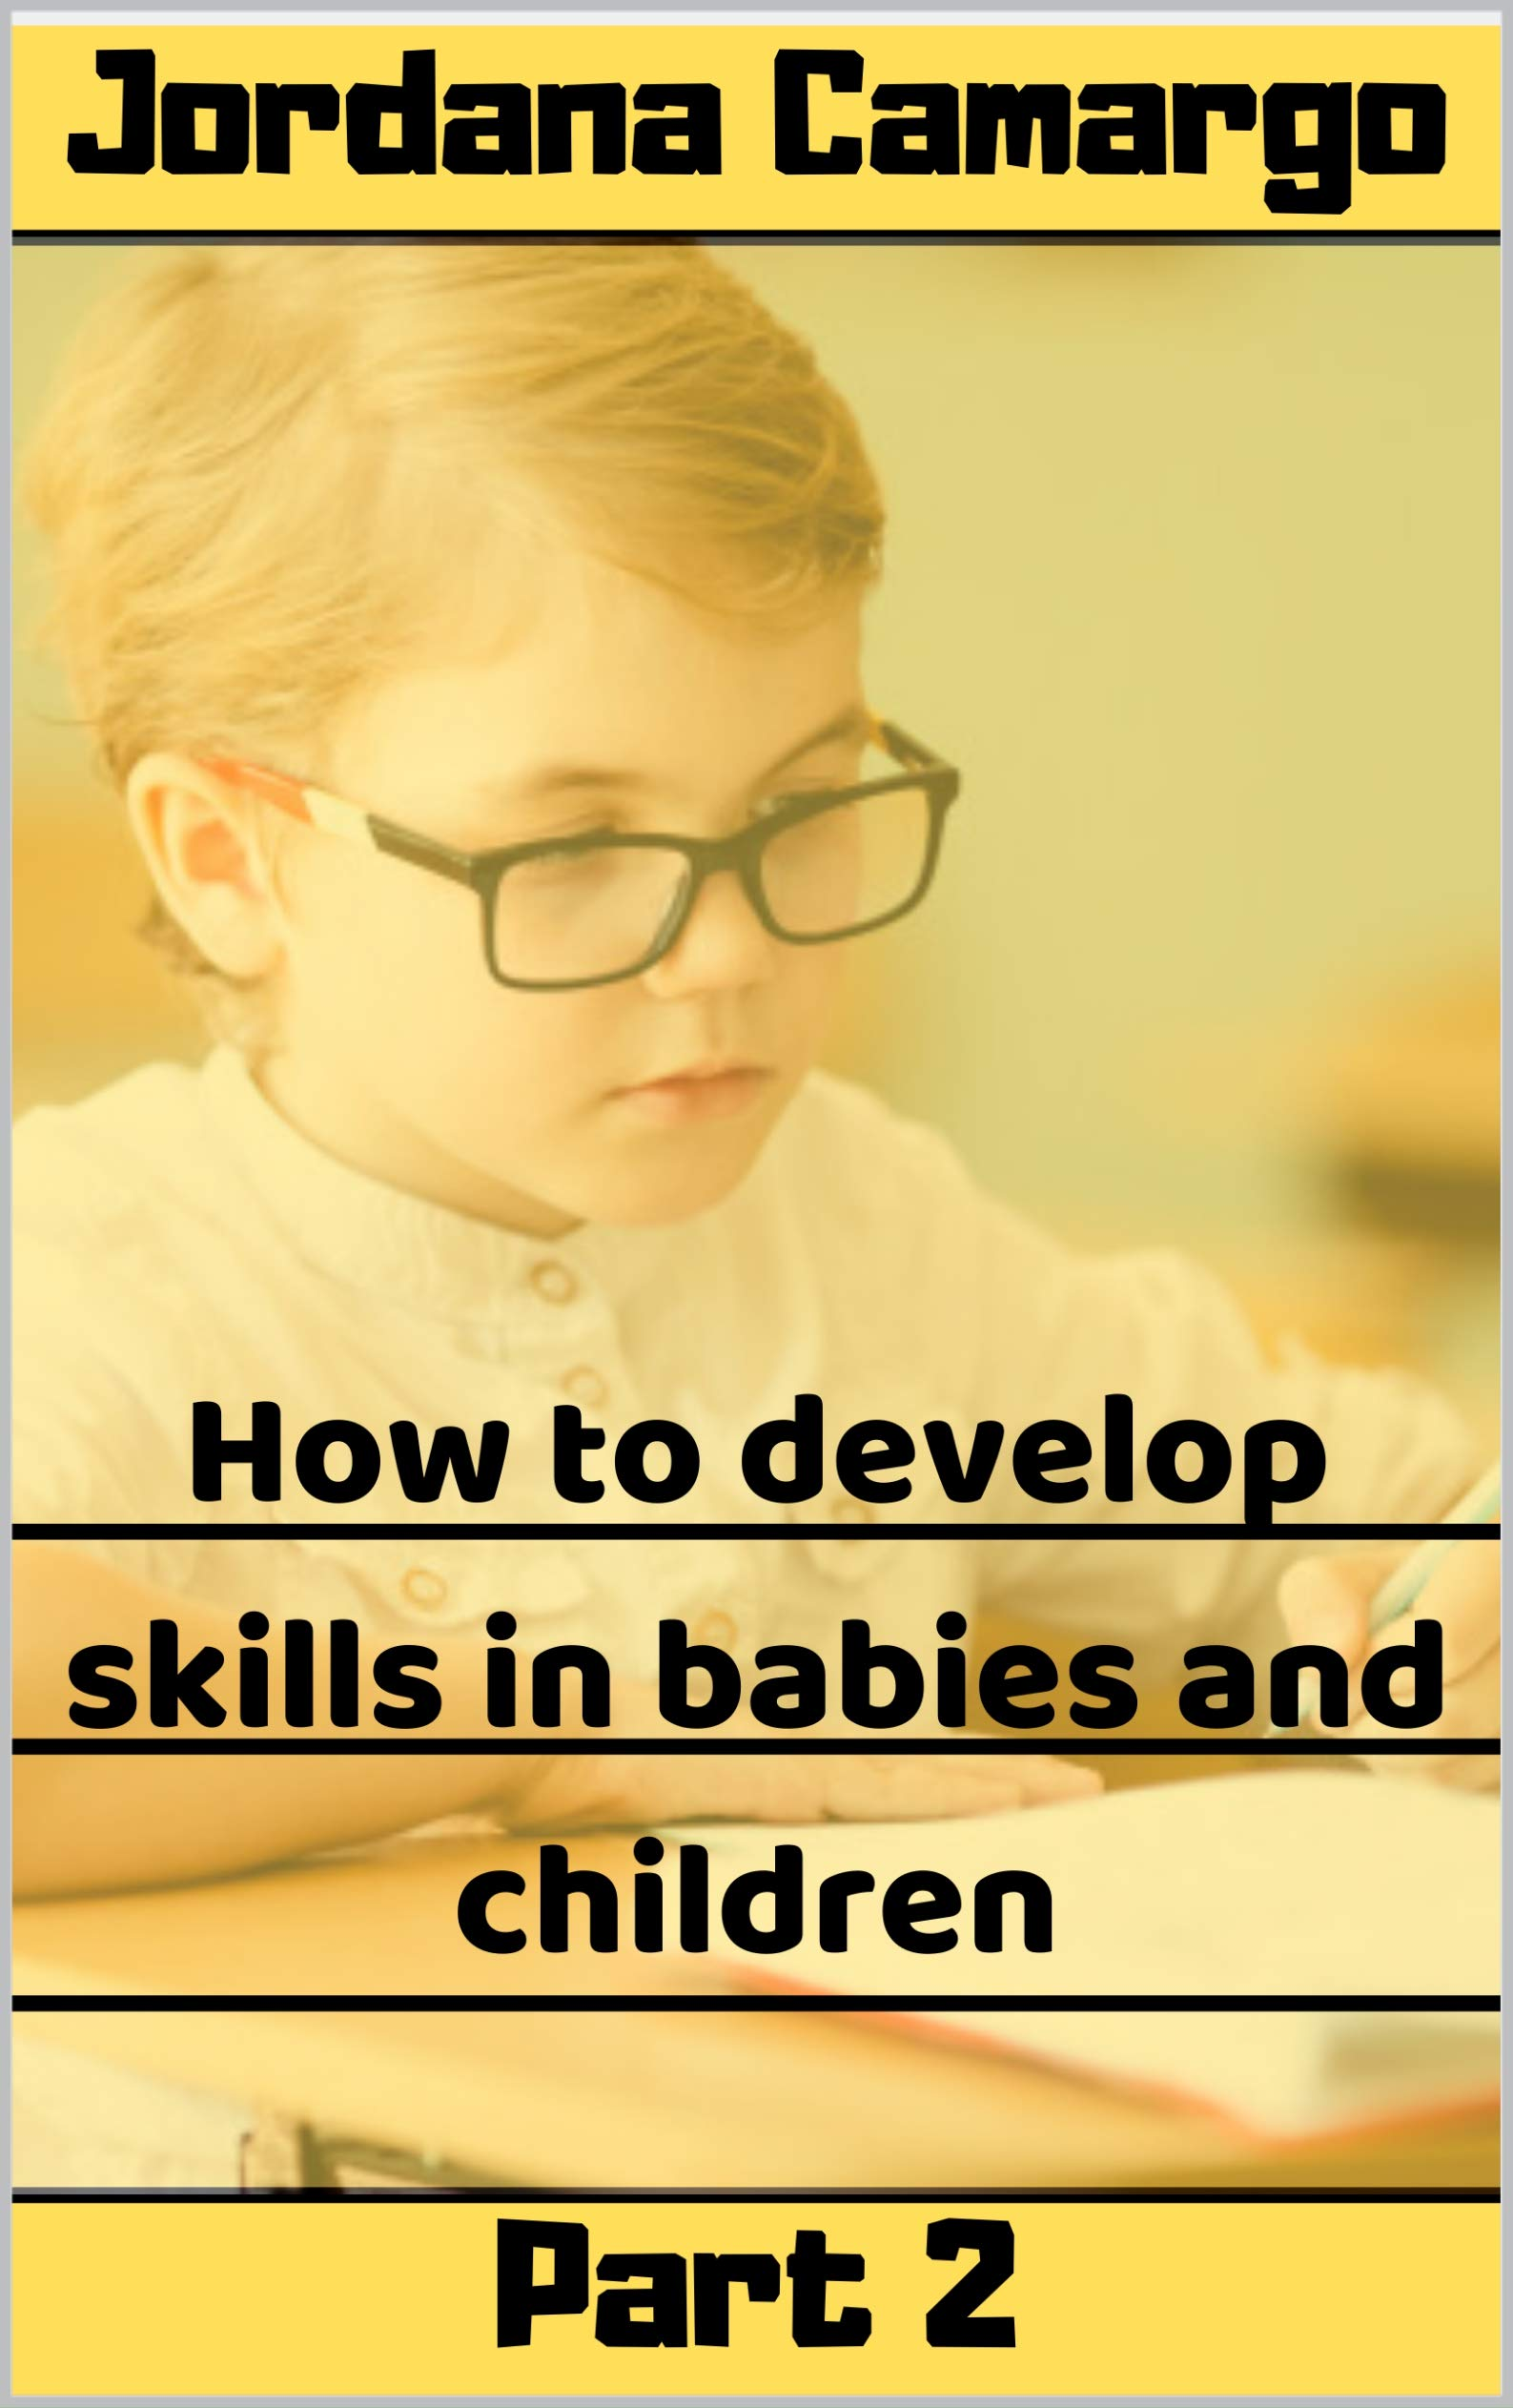 HOW TO DEVELOP SKILLS IN BABIES AND CHILDREN: How to maximize your baby's potential to grow strong and healthy